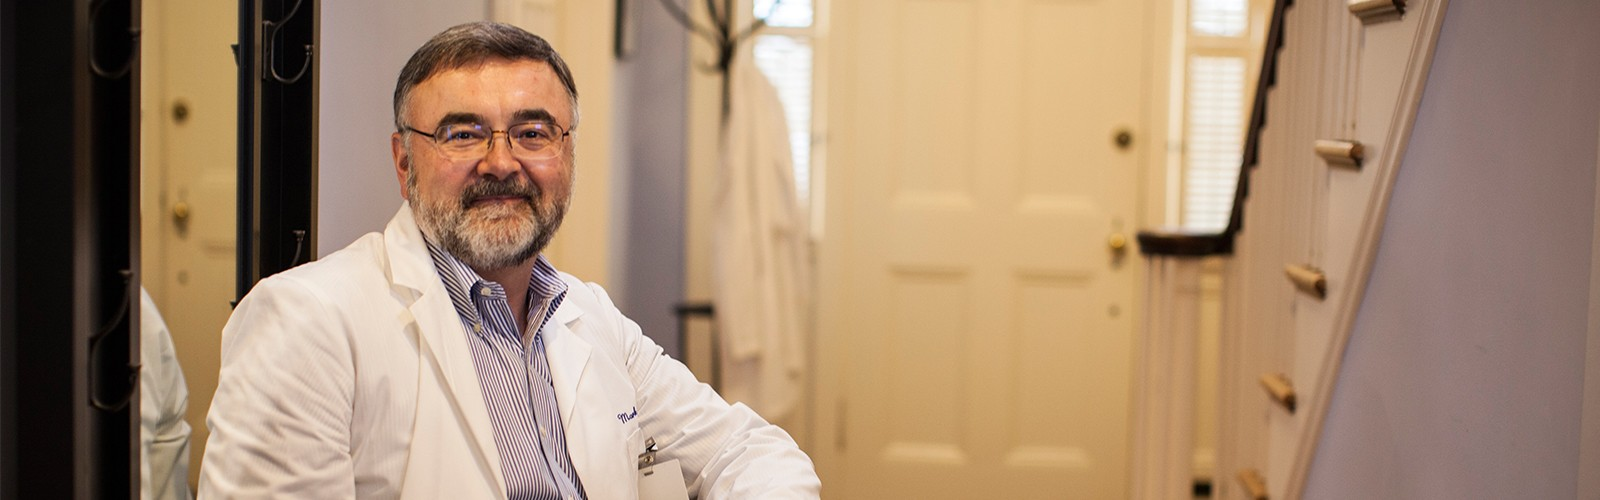 Concierge Medicine Doctor Mark Costa, Dover & Hingham MA